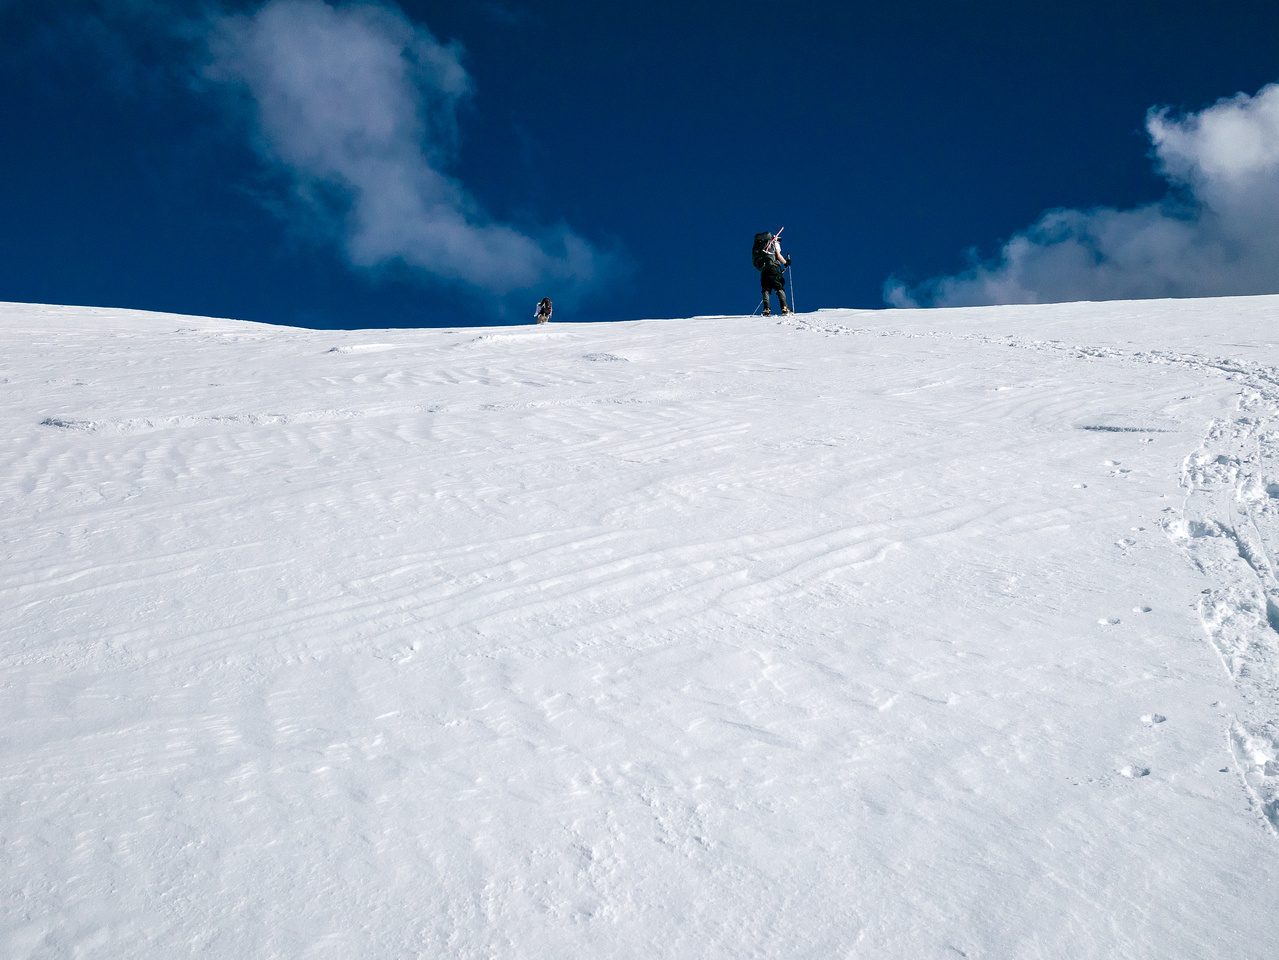 The angle starts to ease off now that we're over the bulge and nearing the summit ridge.